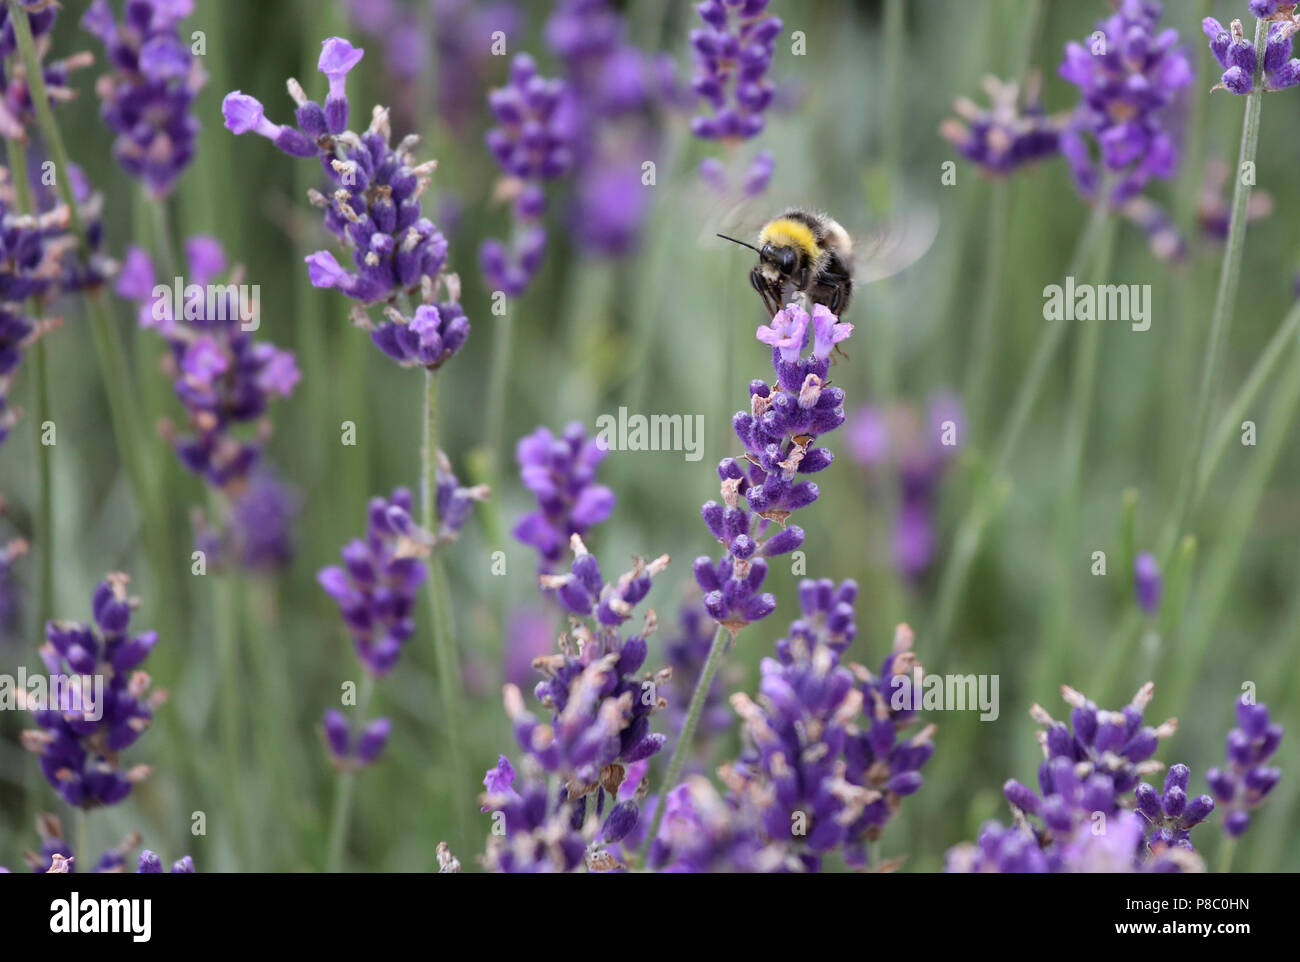 Berlin, Germany, Dark bumblebee collects nectar from a lavender flower - Stock Image